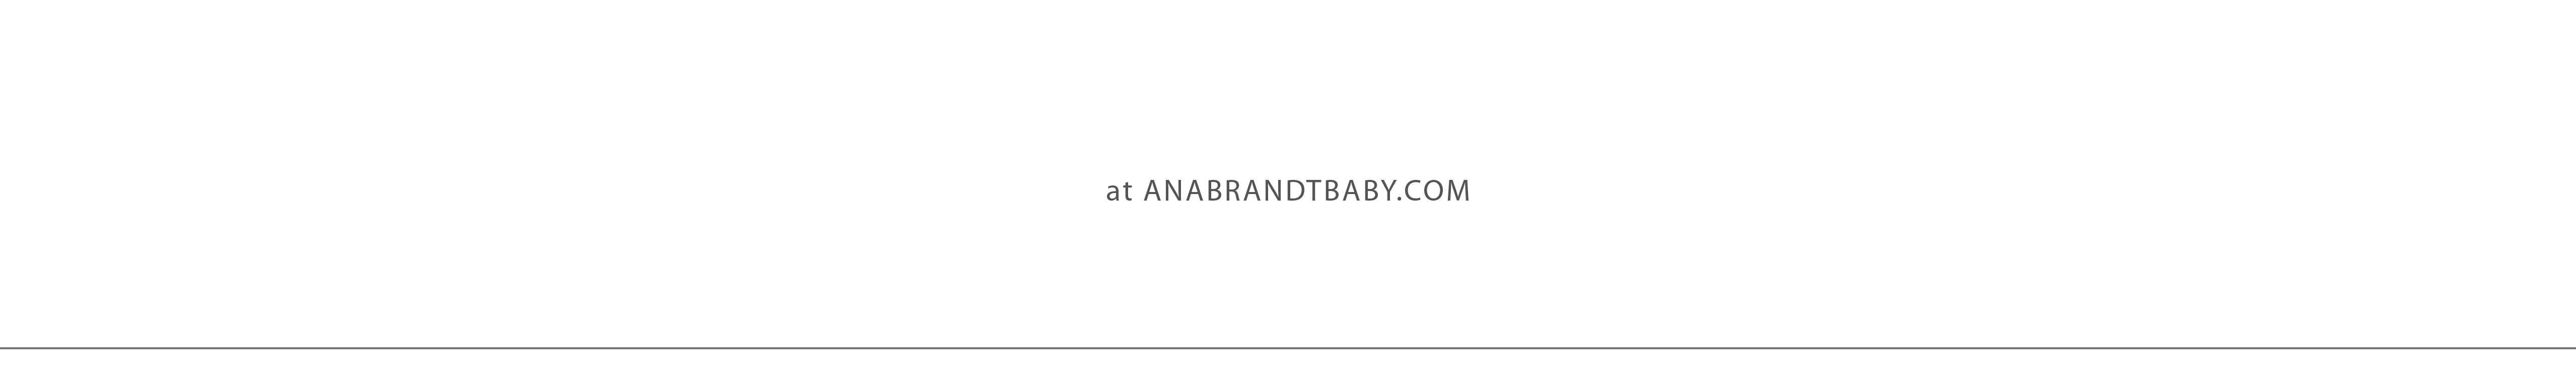 AnaBrandtBaby